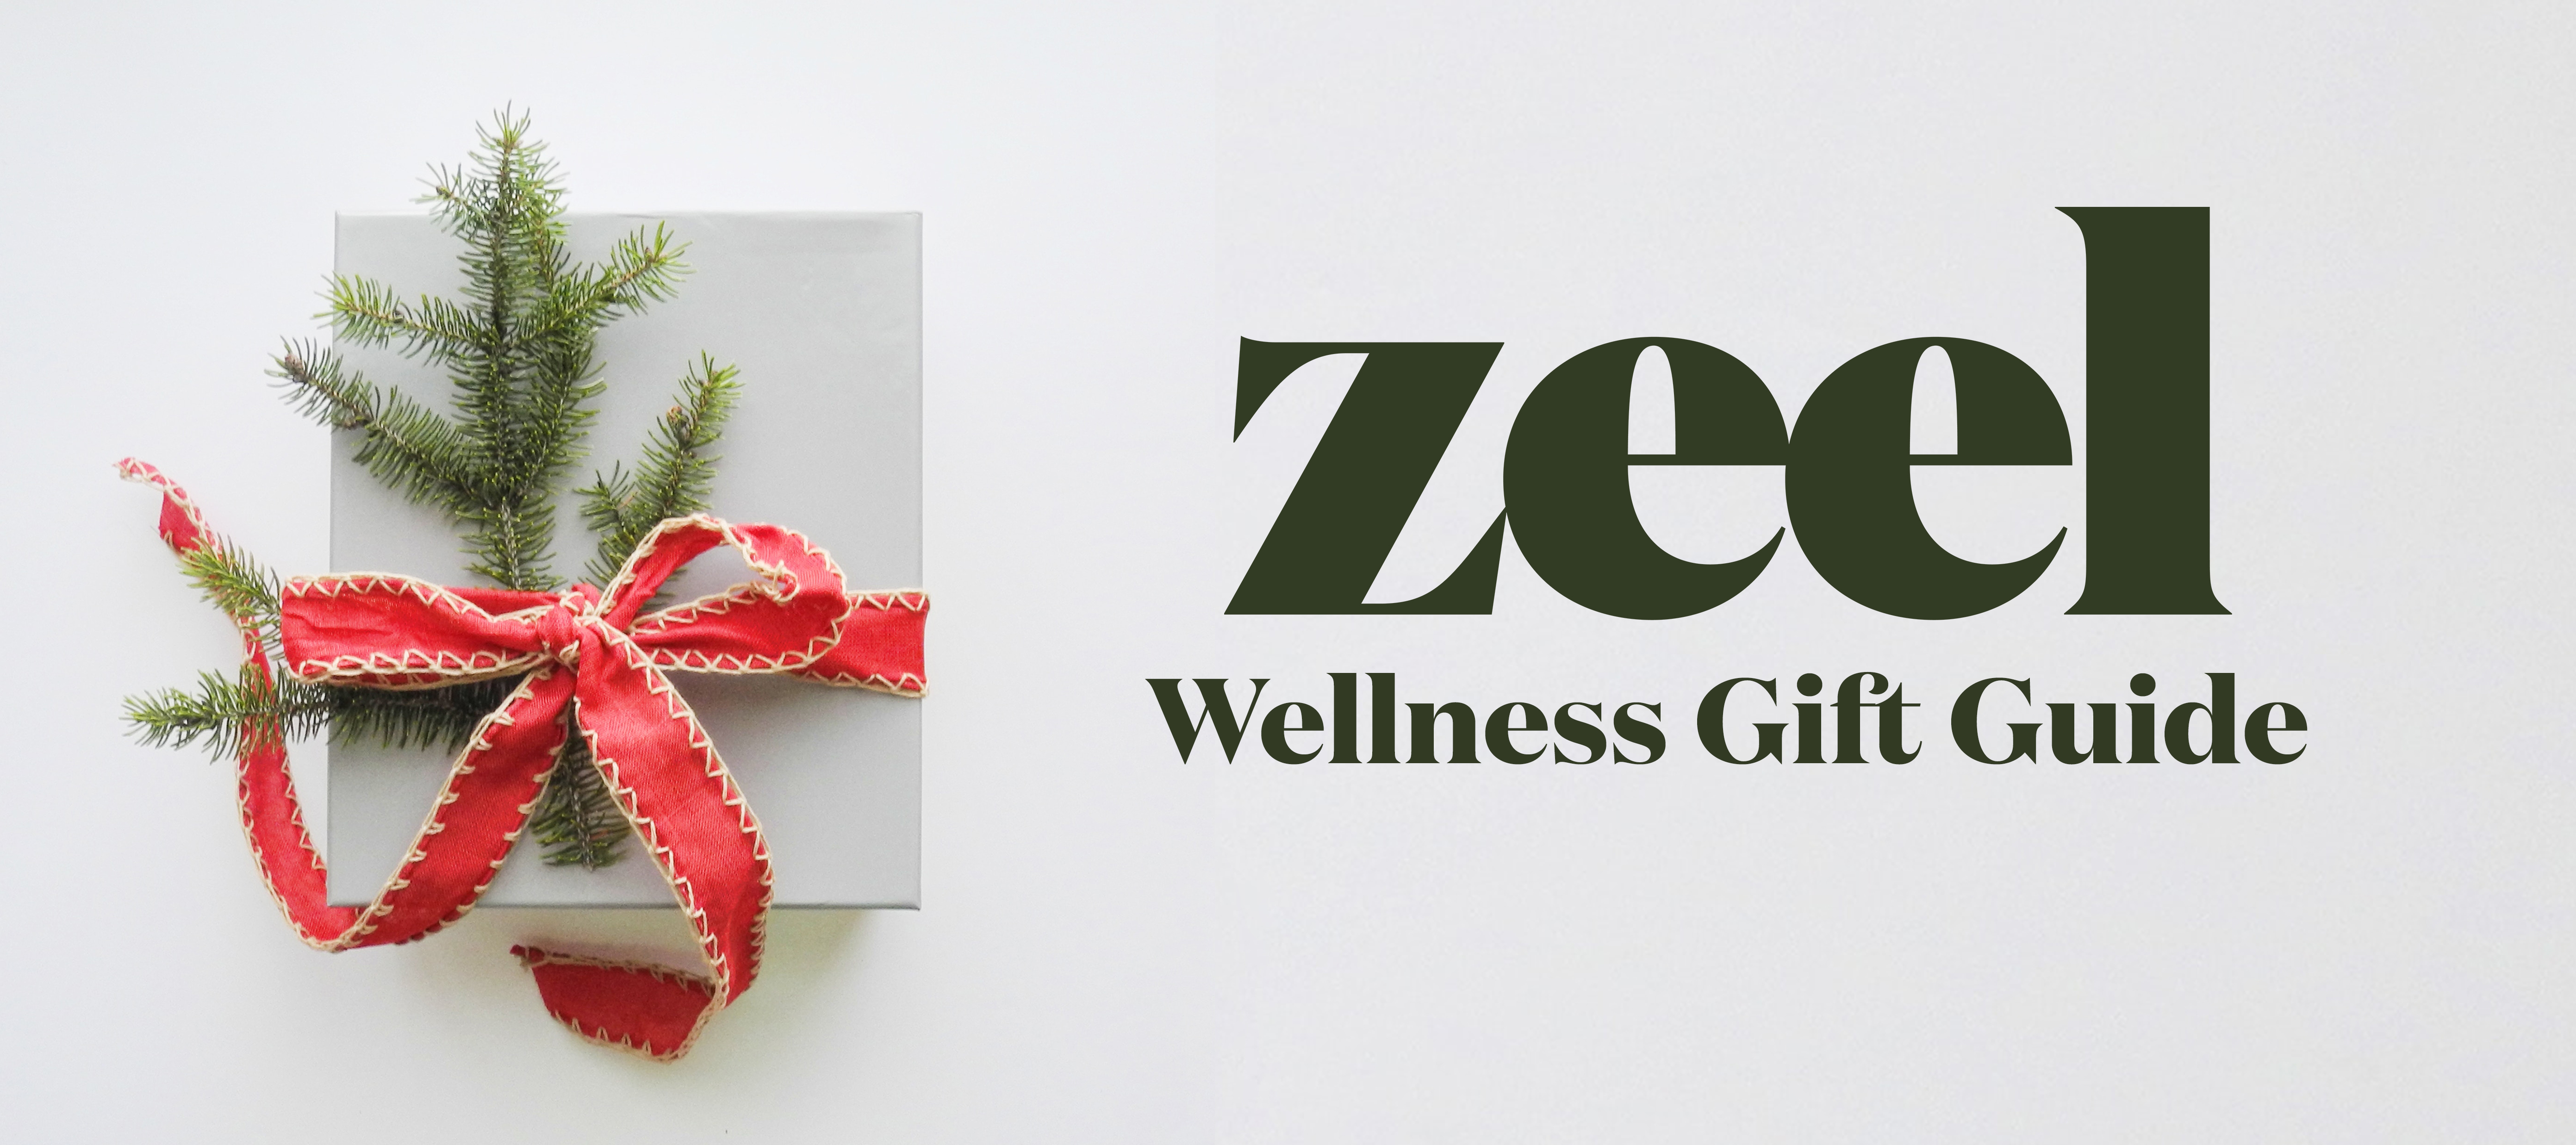 Zeel Holiday Wellness Gift Guide